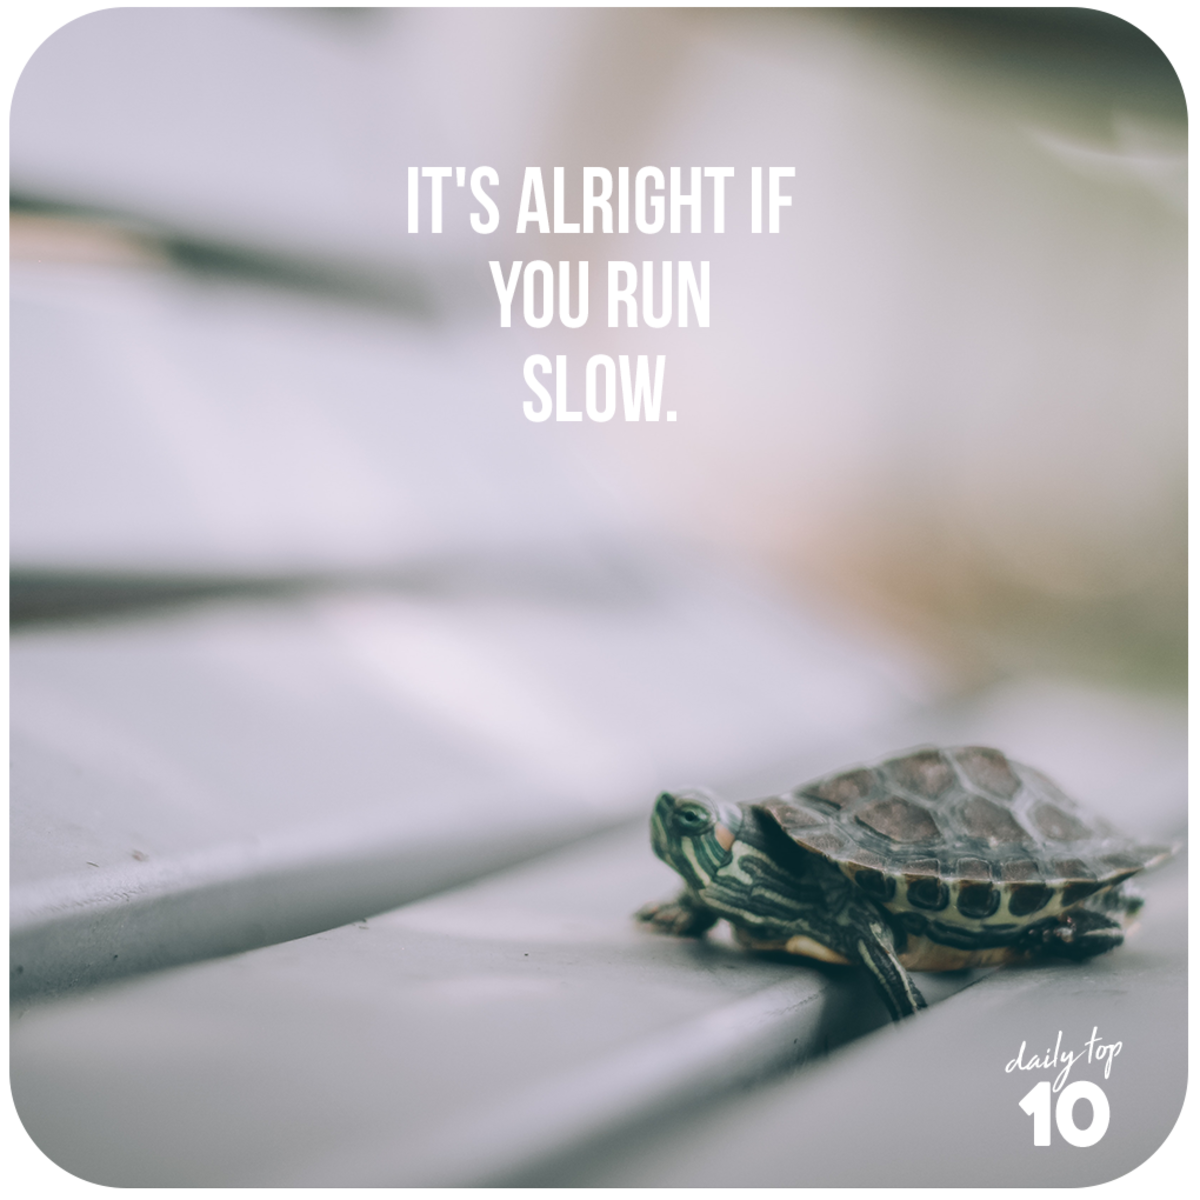 It's alright if you run slow.